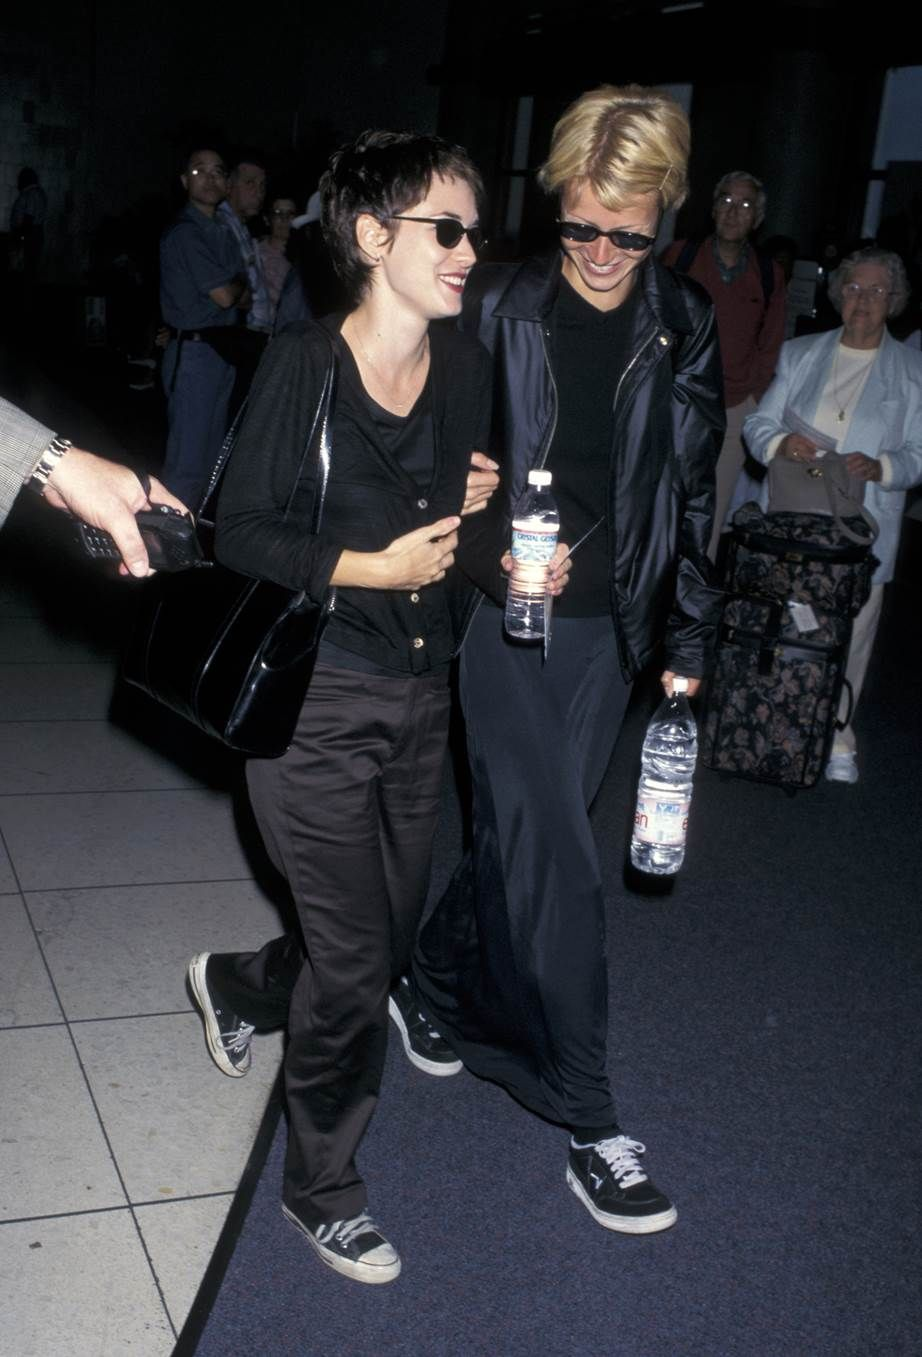 The Best 90's Celebrity Street Style